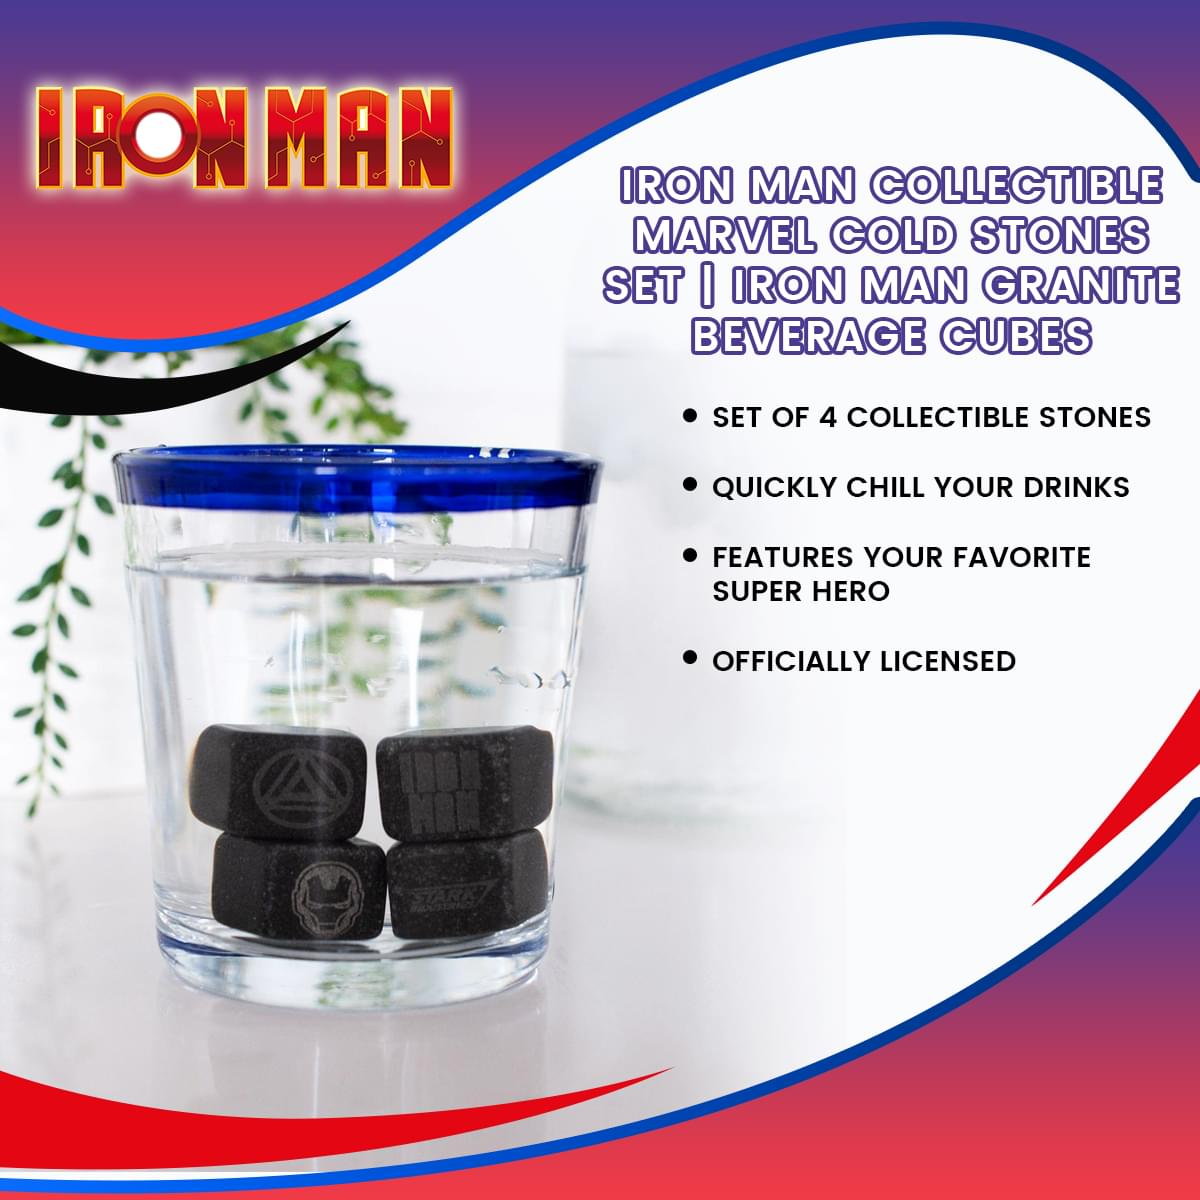 Iron Man Collectible | Marvel Cold Stones Set | Iron Man Granite Beverage Cubes